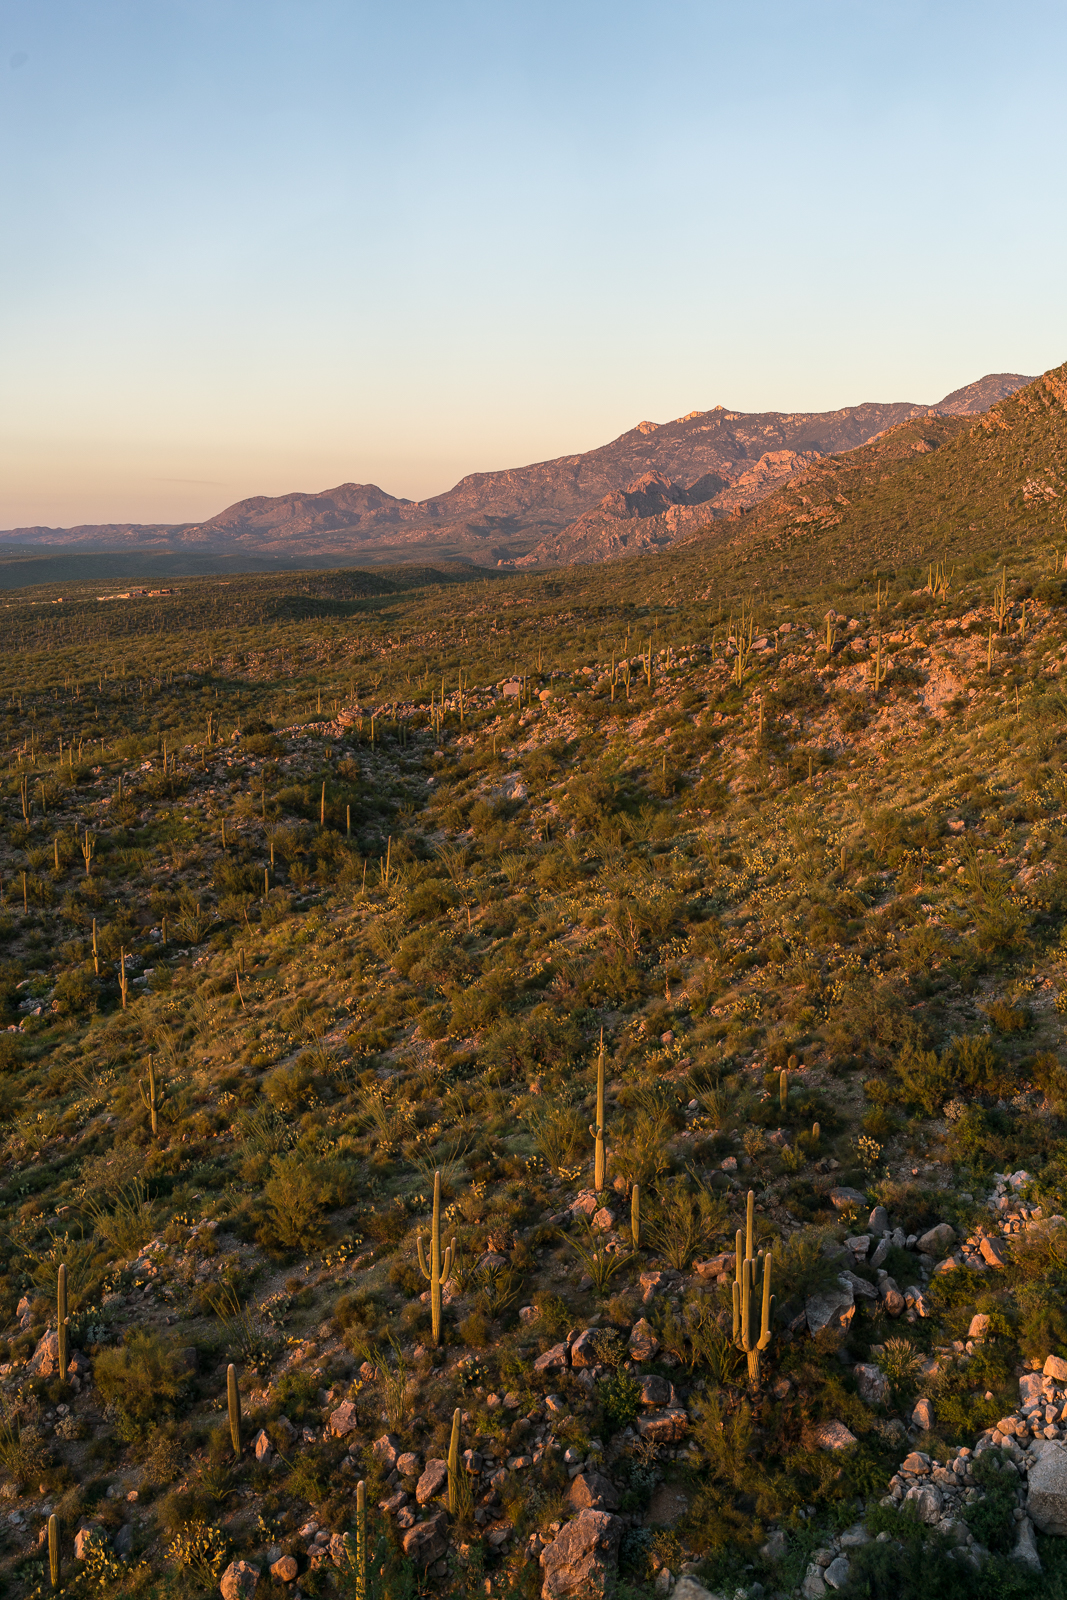 Looking across the Pusch Ridge Wilderness towards Charouleau Gap from near the Linda Vista Trails. September 2016.